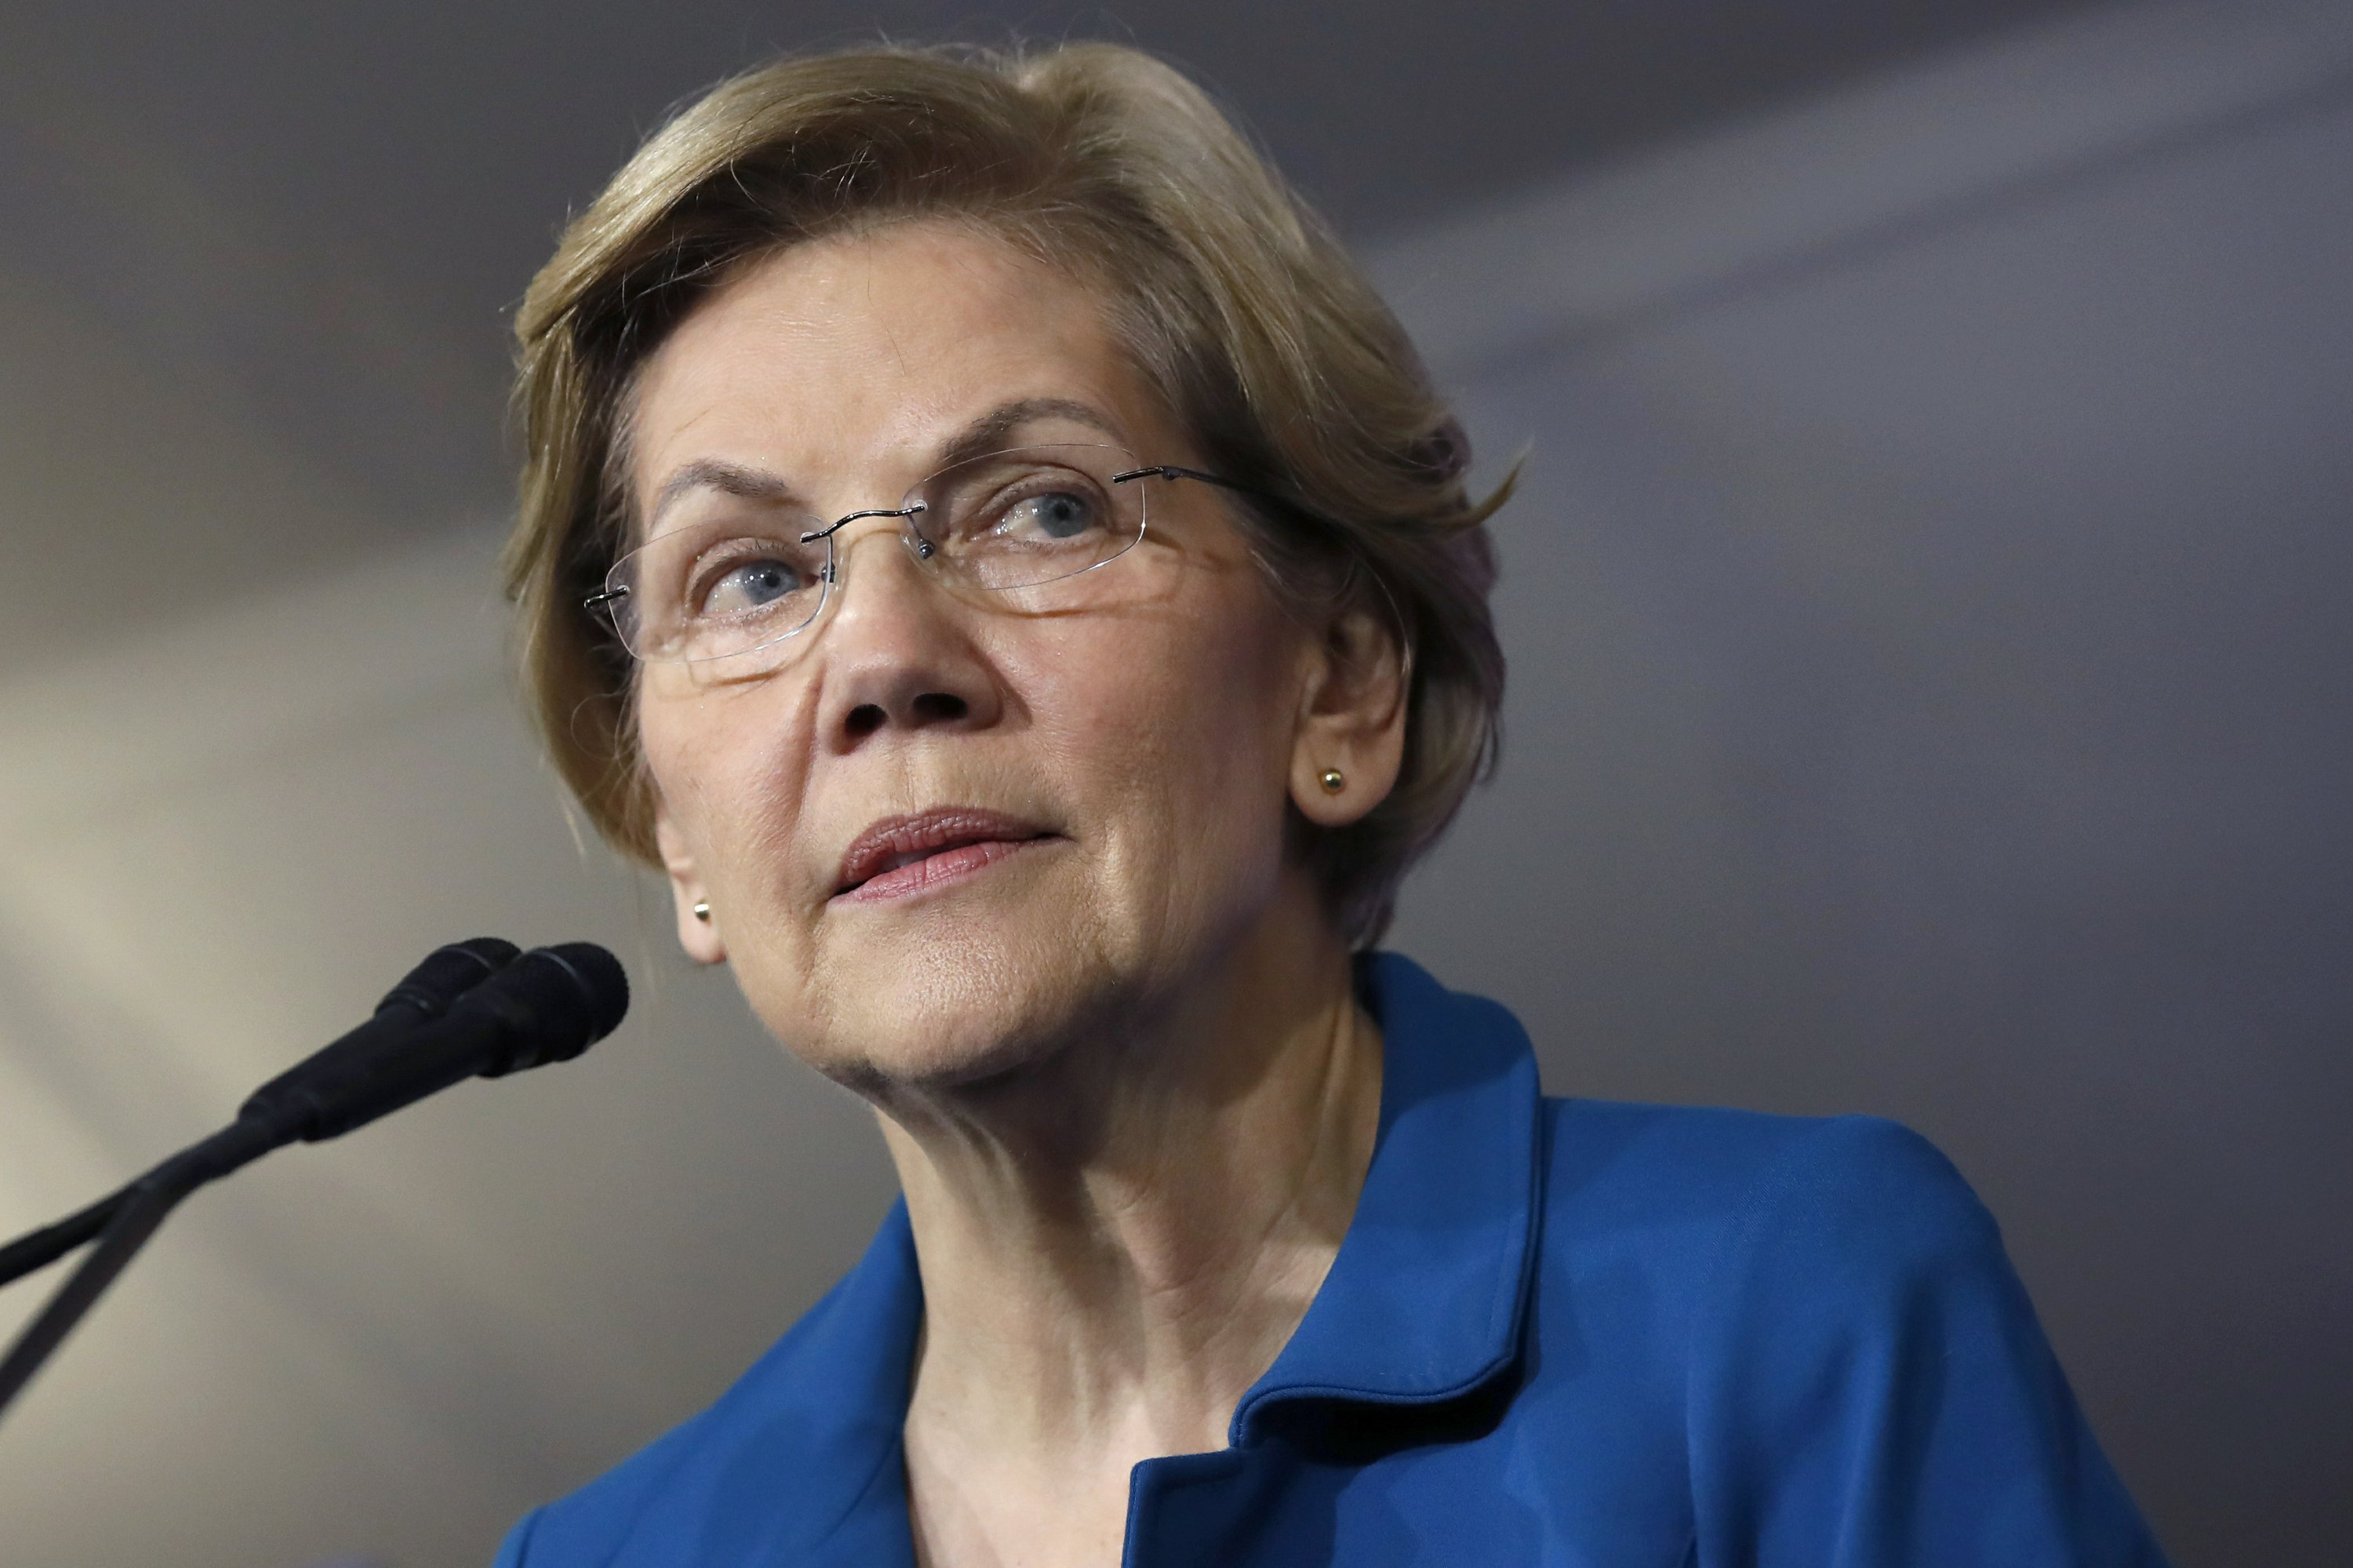 Warren raised $6M since Iowa, hasn't discussed dropping out